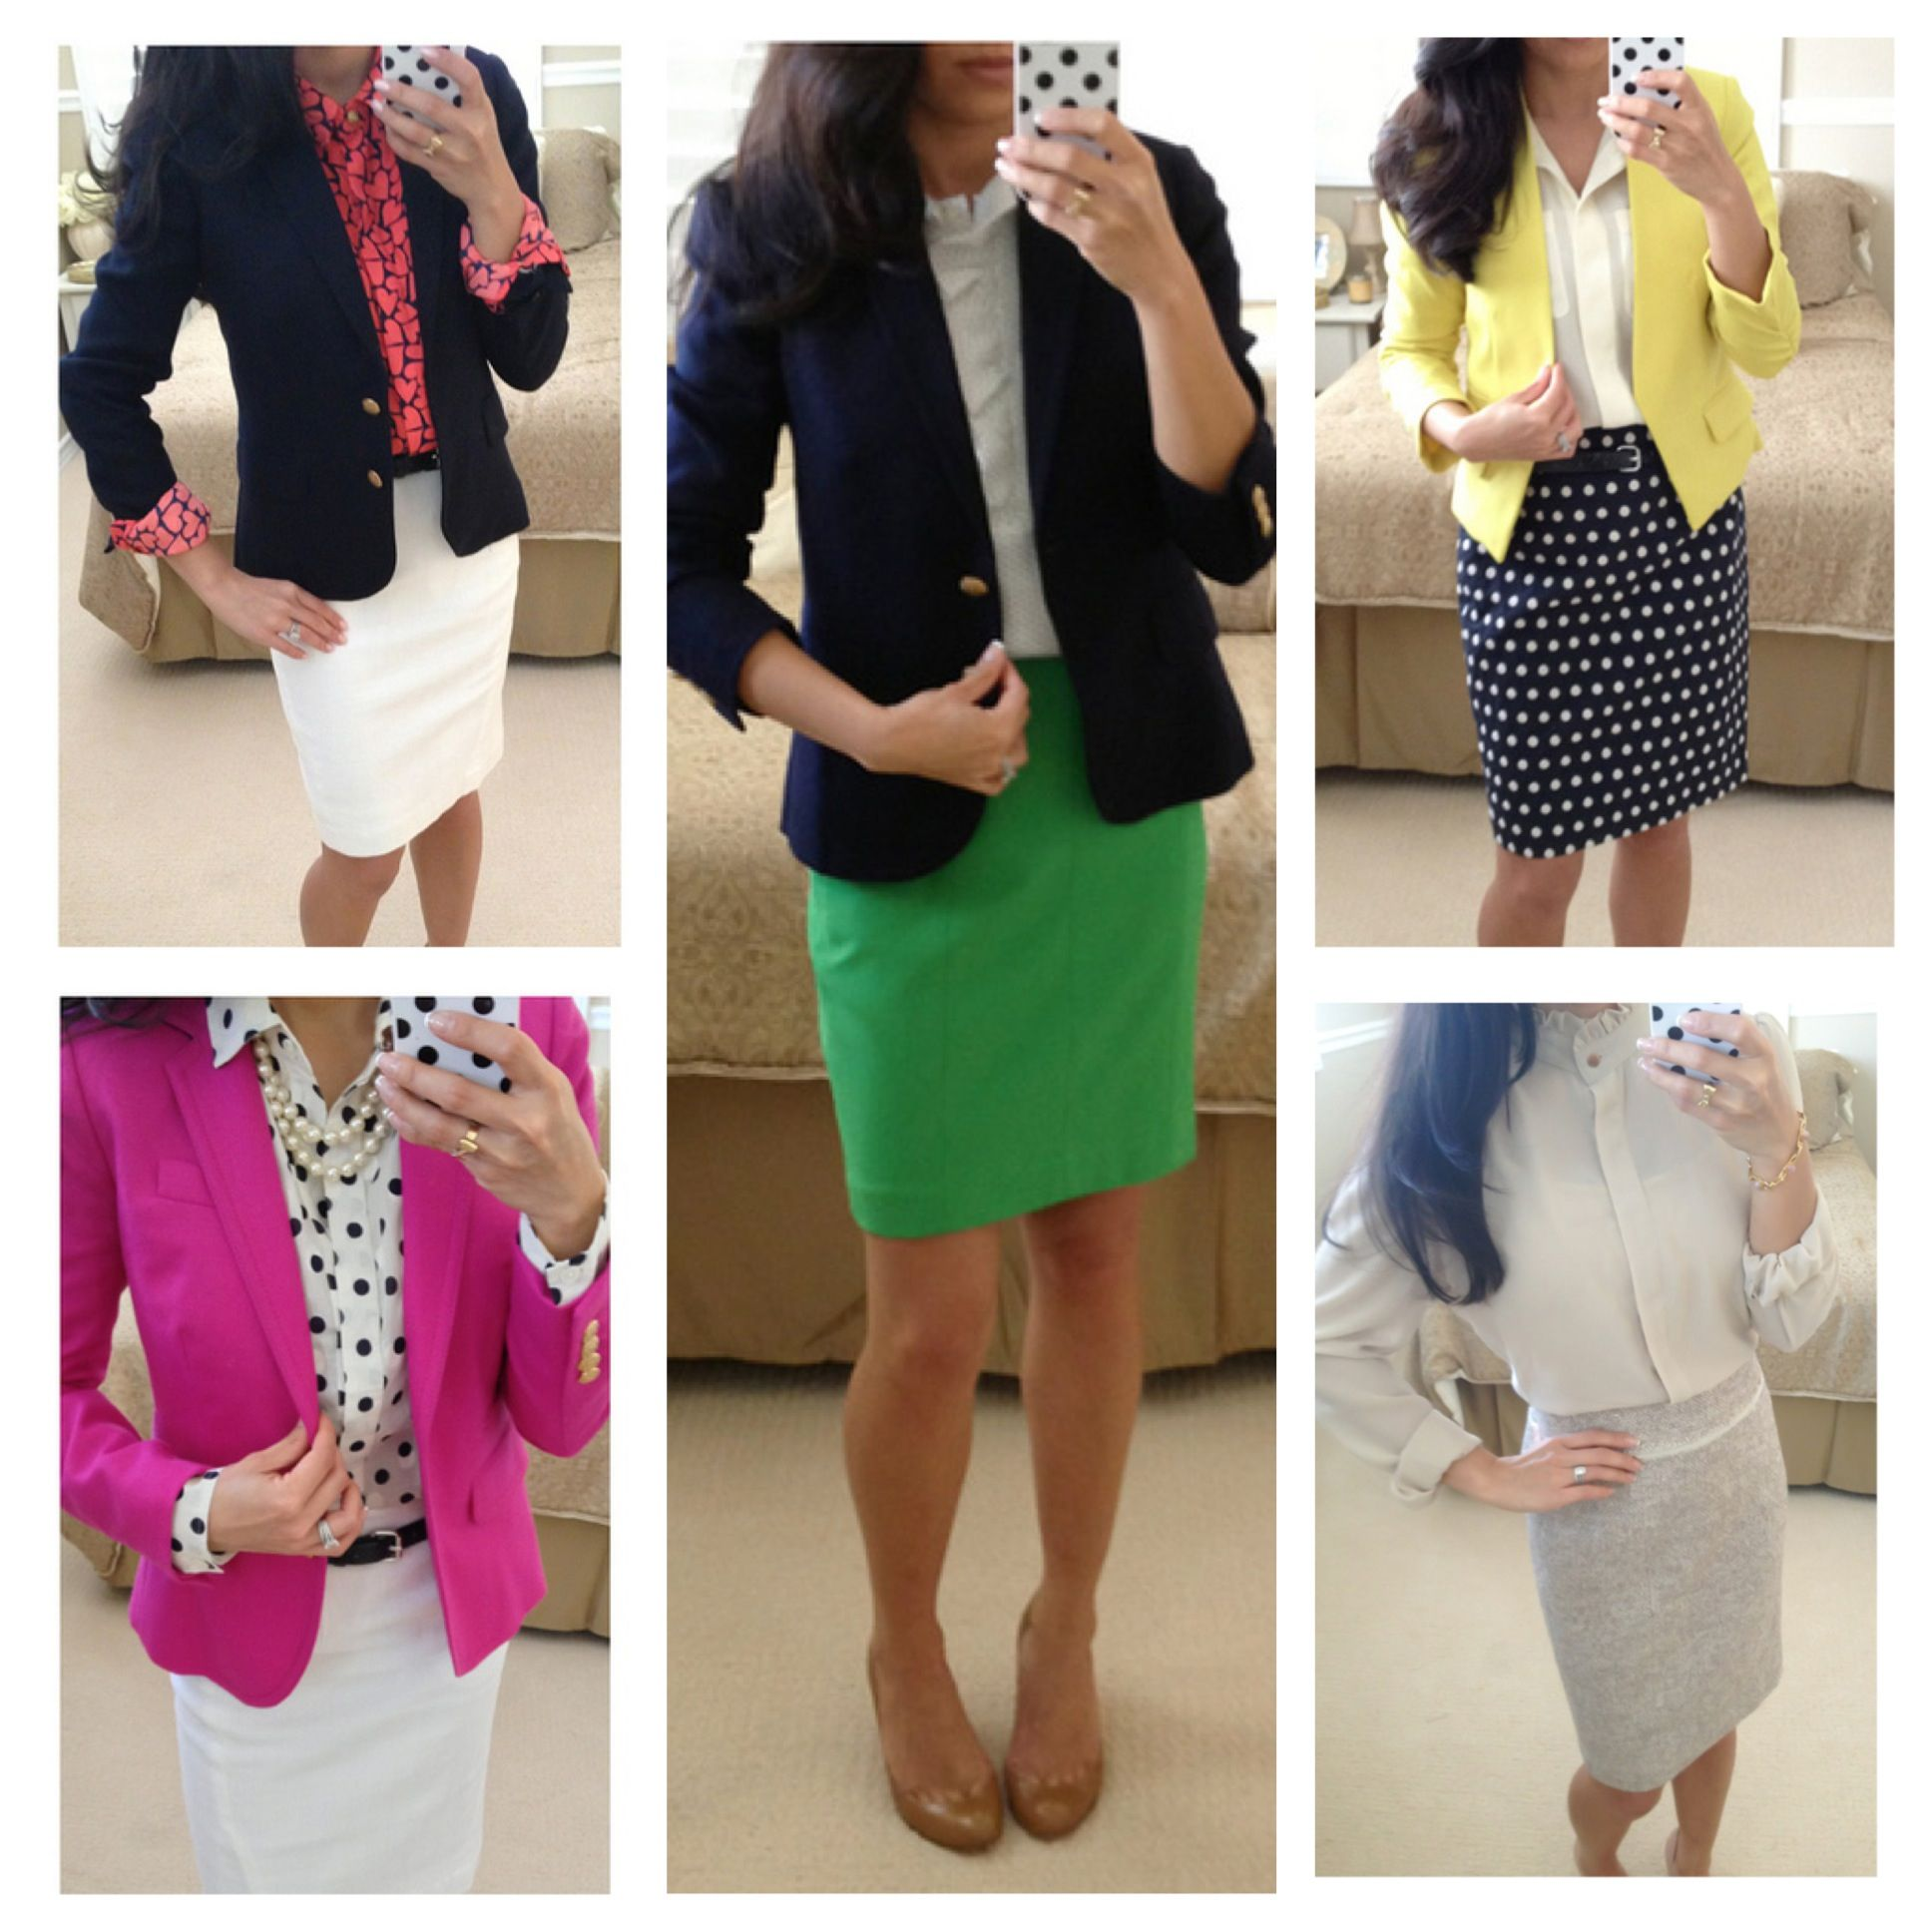 Dressy and classy work outfits - perfect for warmer weather in